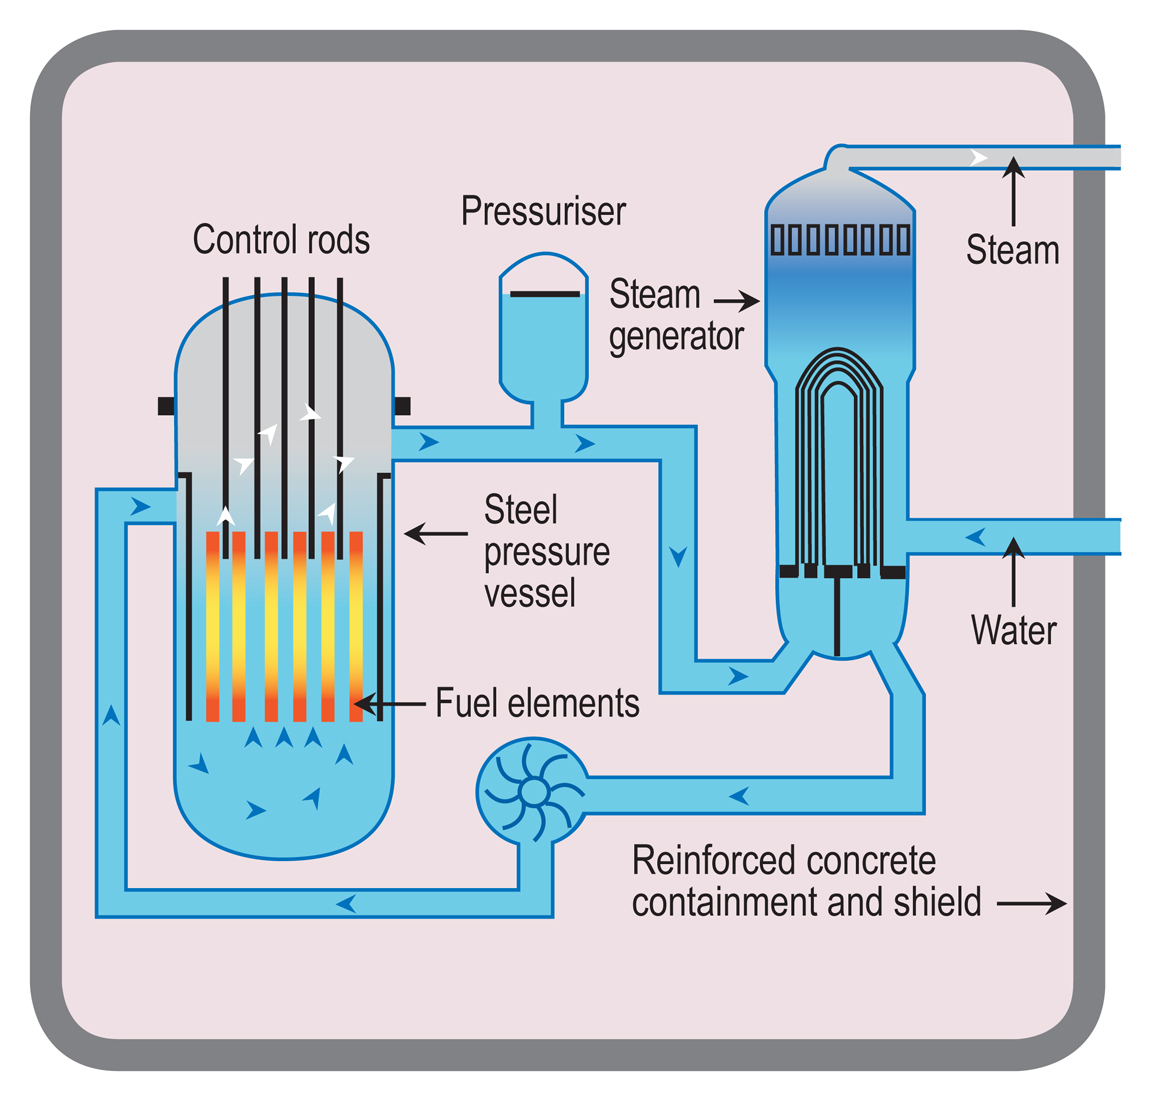 pwr.jpg. Diagram of pressurised water reactor